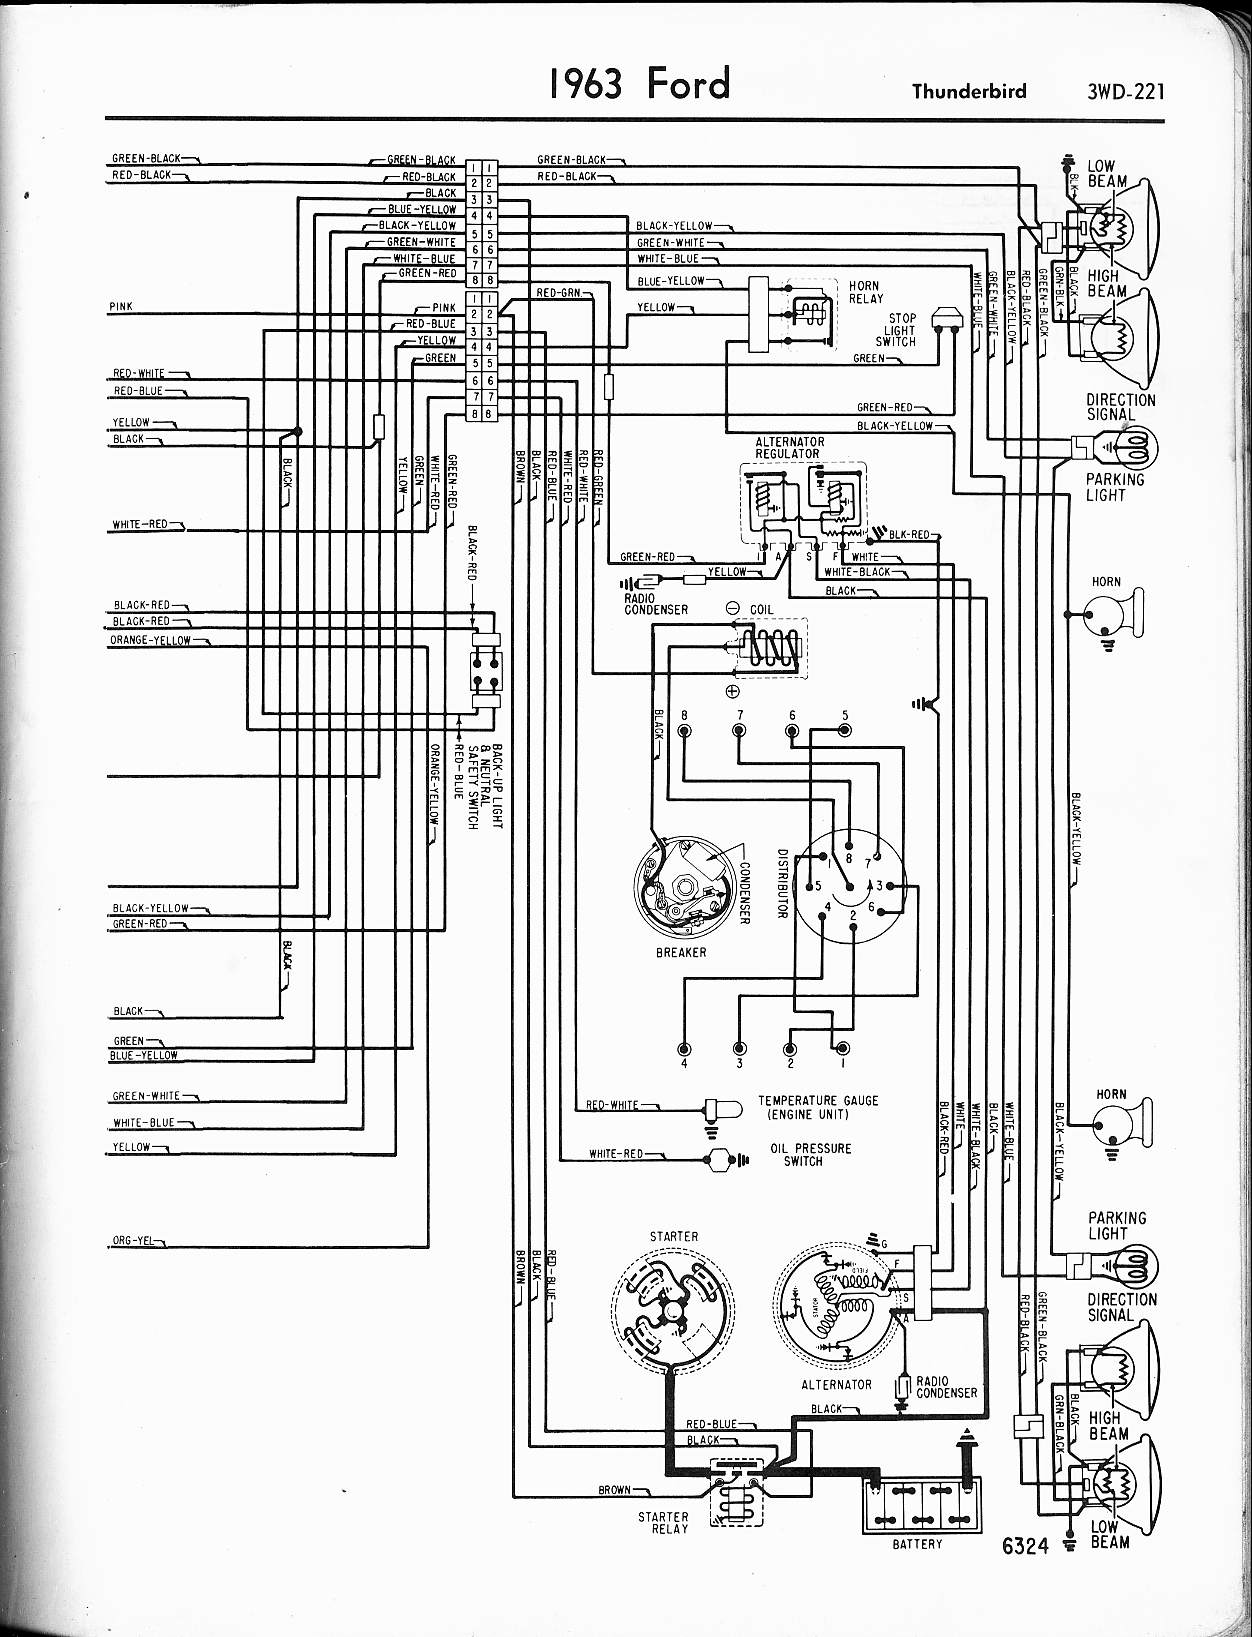 1956 Thunderbird Horn Wiring Diagram Data 1959 Chevy 57 65 Ford Diagrams